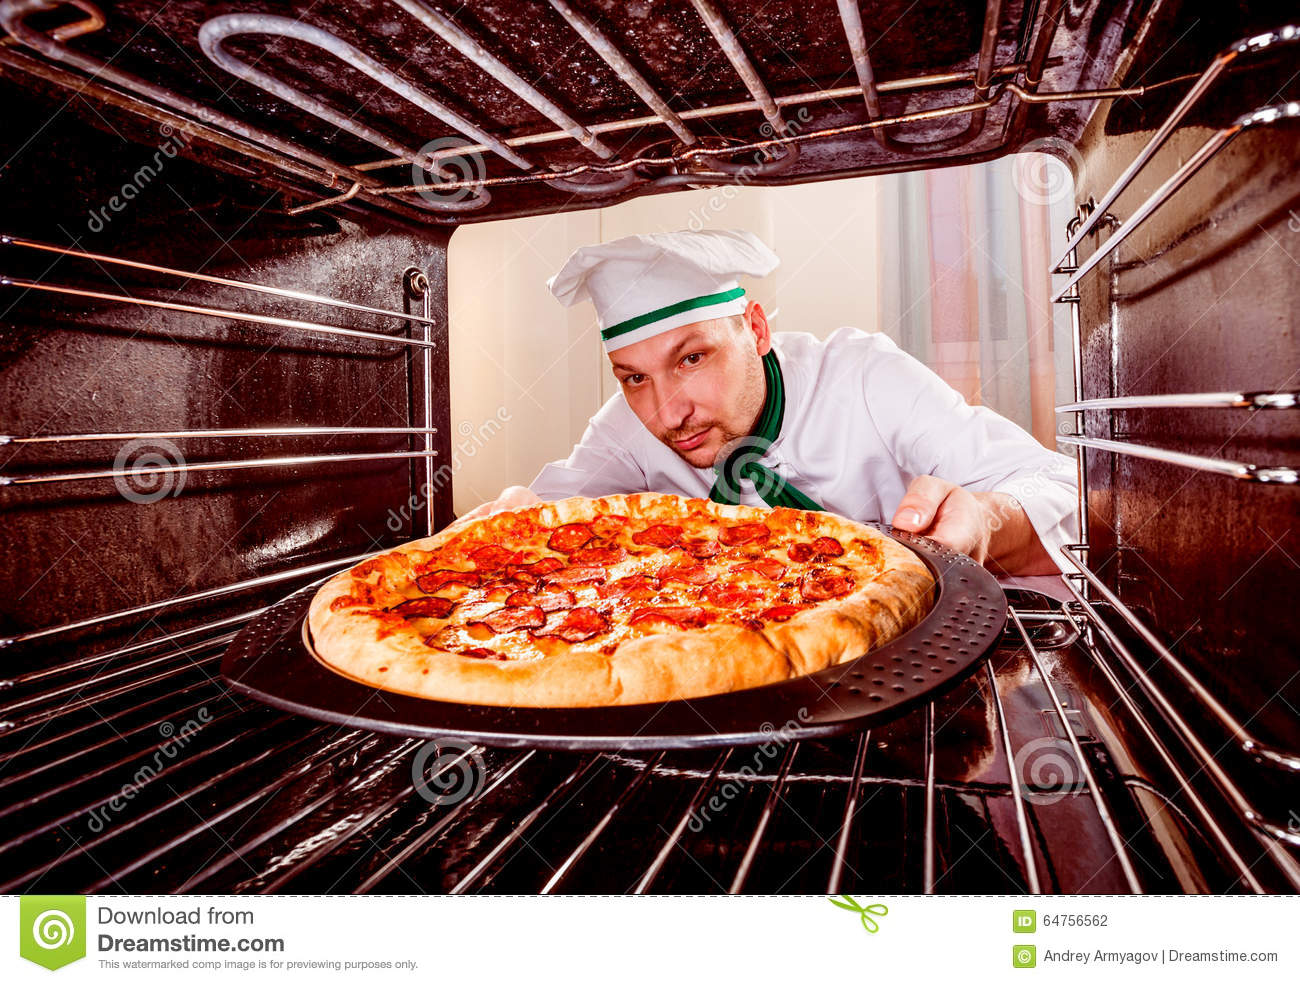 Fast Cooking Ovens Chef Cooking Pizza In The Oven Stock Photo Image 64756562